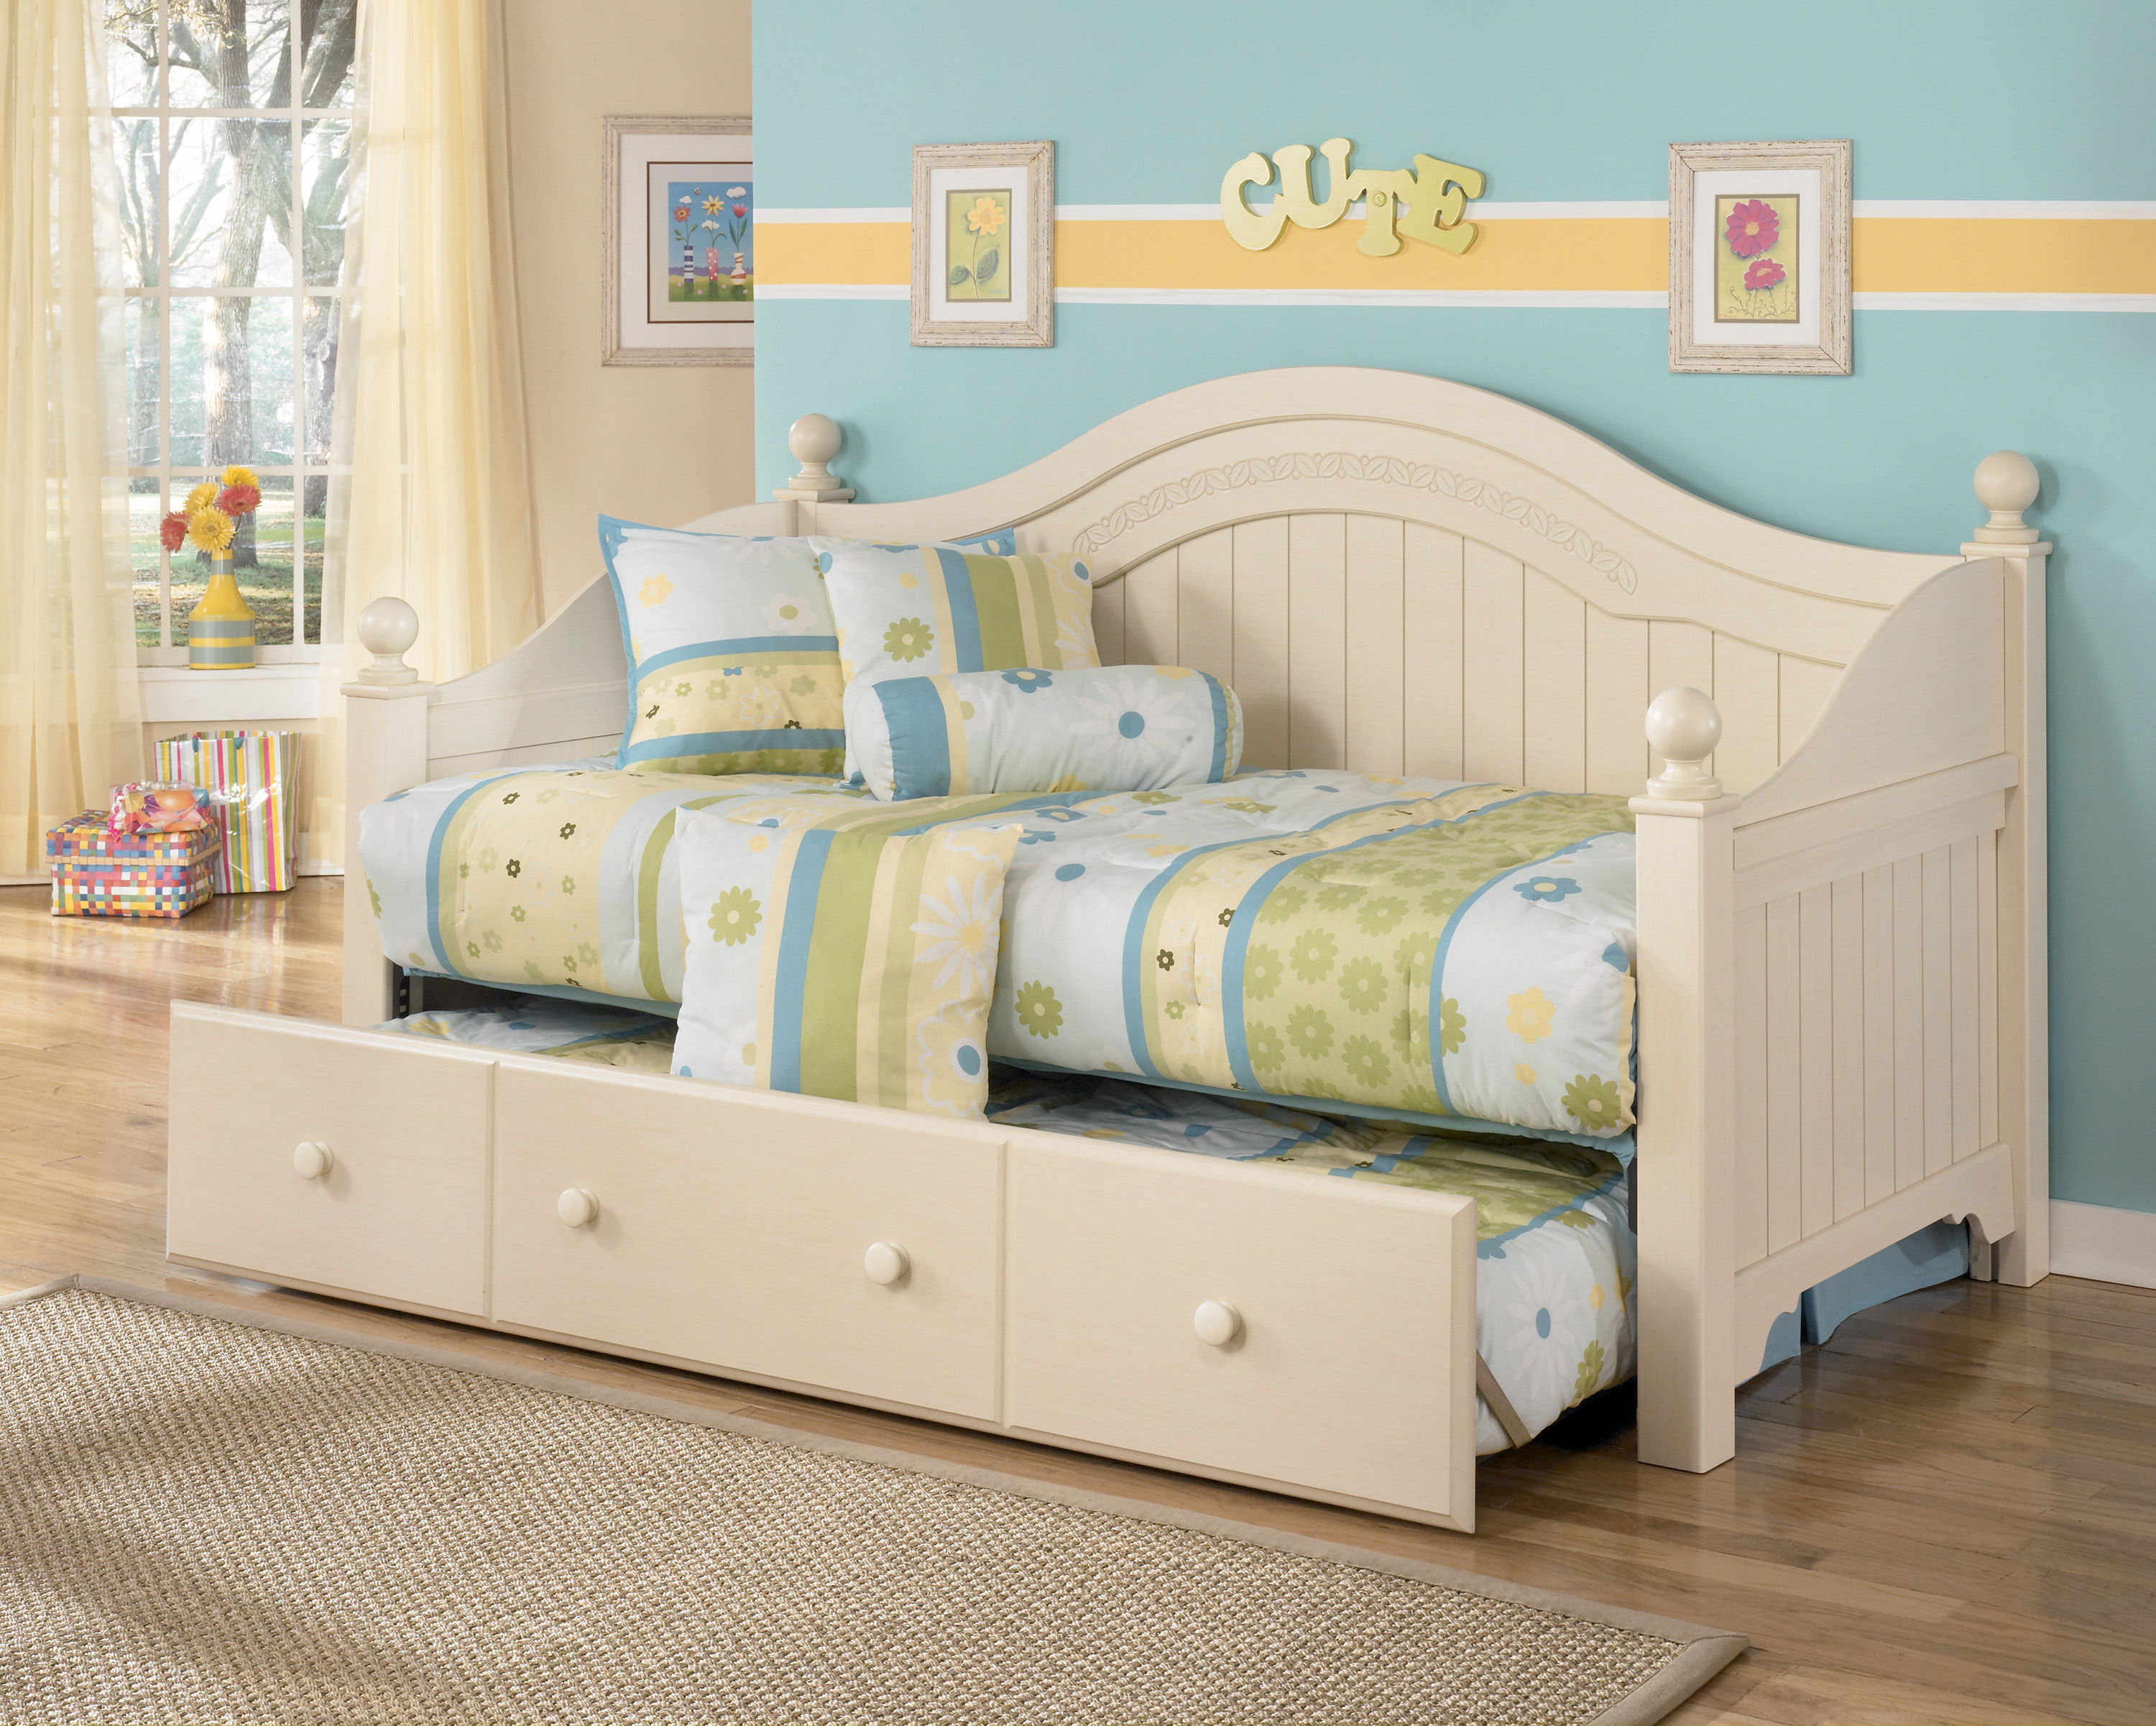 Ashley Furniture Cottage Retreat Day Bed with Trundle | The Classy